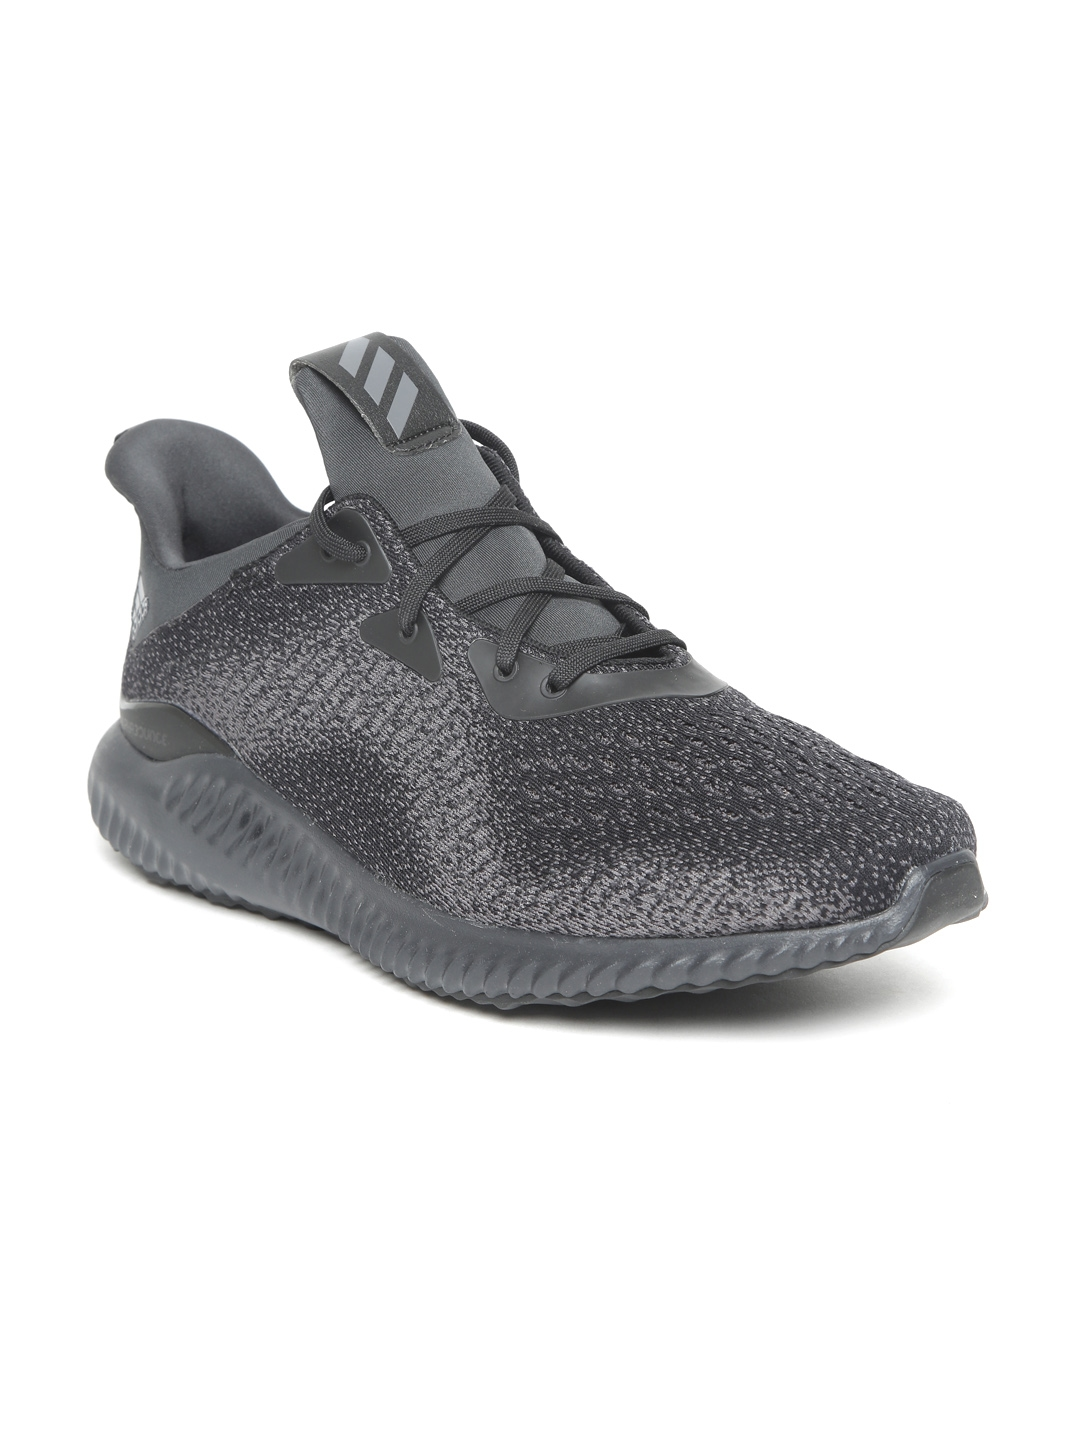 12cac74d32854 Buy ADIDAS Men Charcoal Grey Alphabounce EM Running Shoes - Sports ...